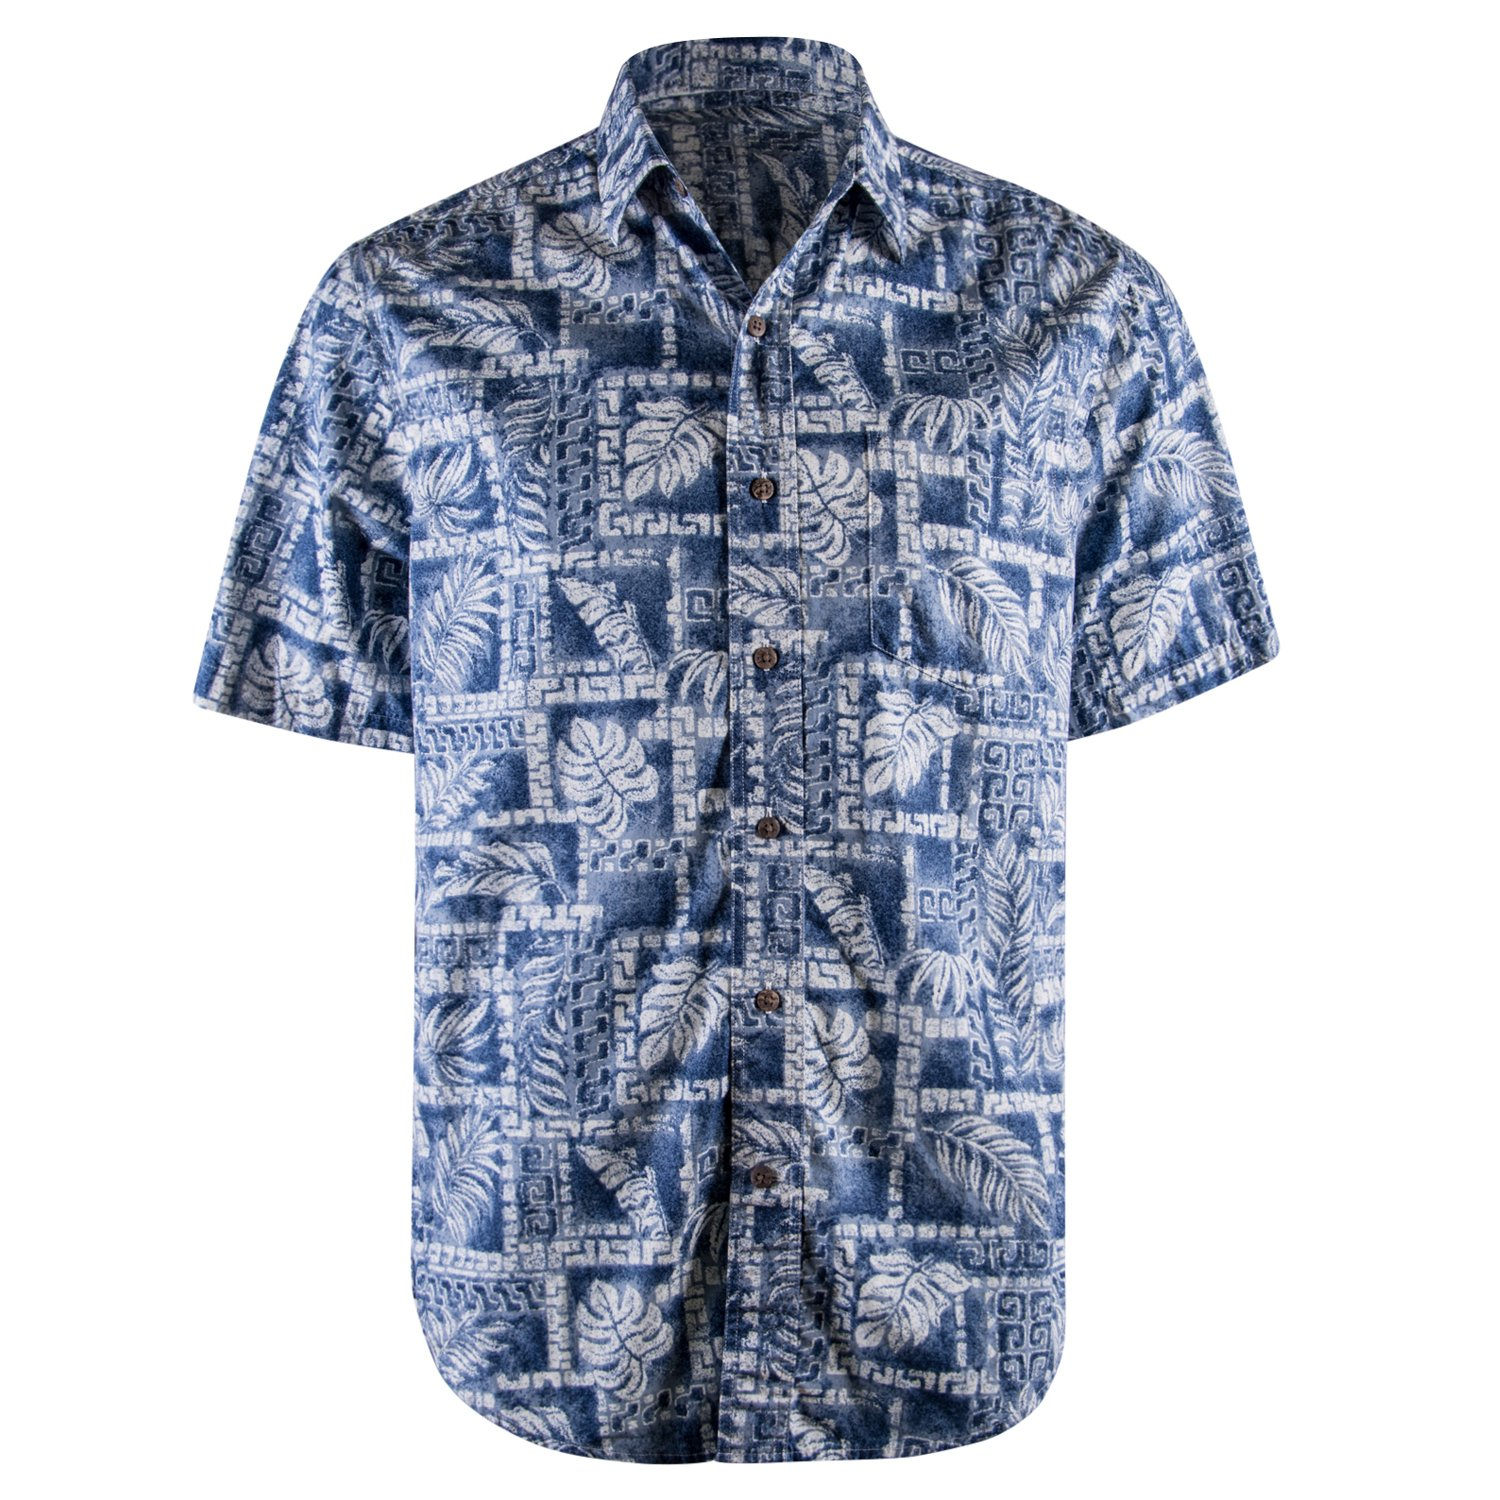 Fun And Funky Hawaiian Button Down Short Sleeved T Shirts For Men In